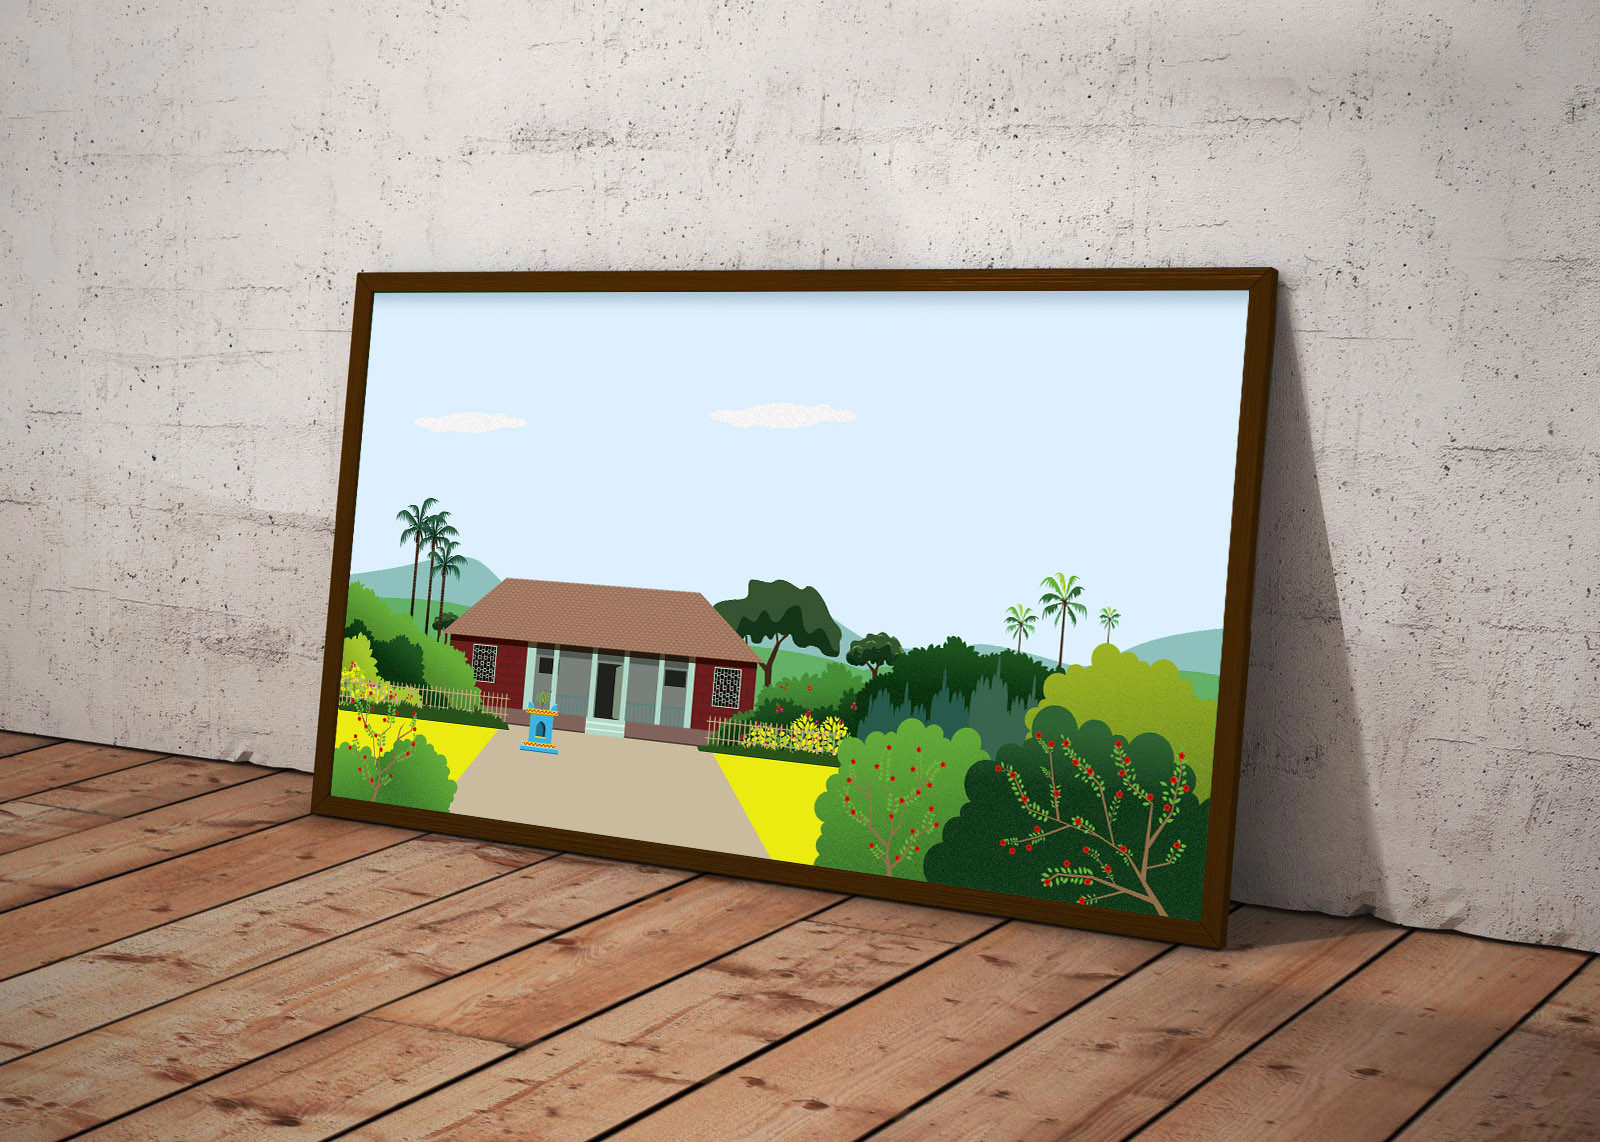 Rajesh r sawant free horizontal photo frame mockup psd konkan files